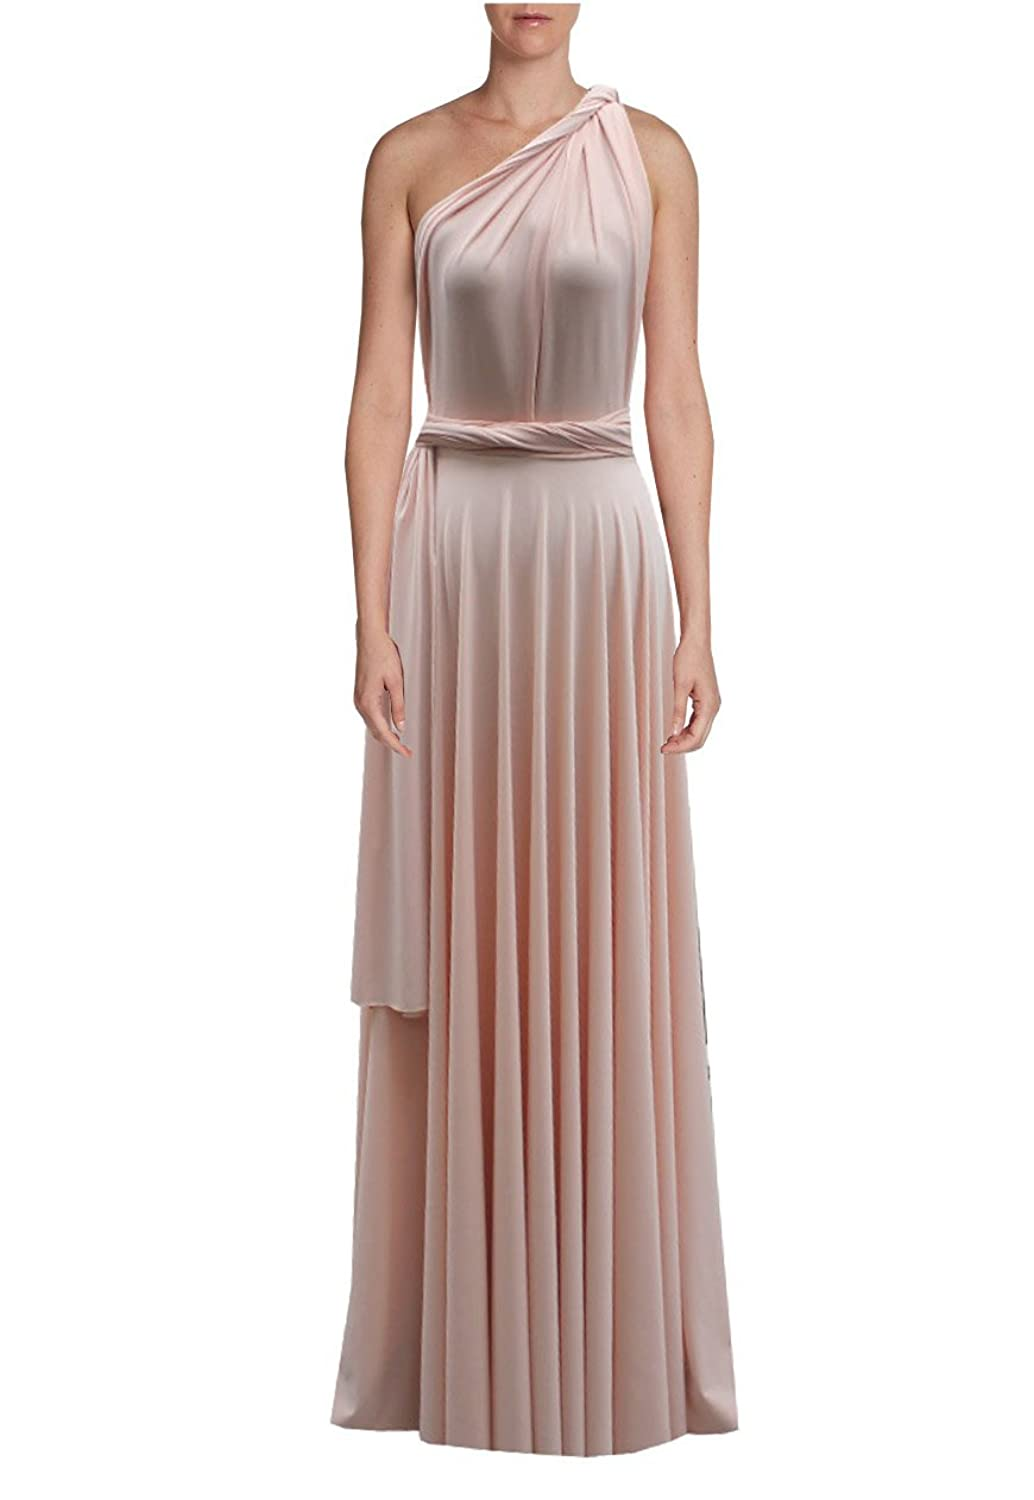 4580b24734b ... Infinity dress Long bridesmaid gown Convertible wedding multiway skirt  Plus size wrap clothing. Wholesale Price 79.99 -  129.99. Perfect for  bridesmaids ...